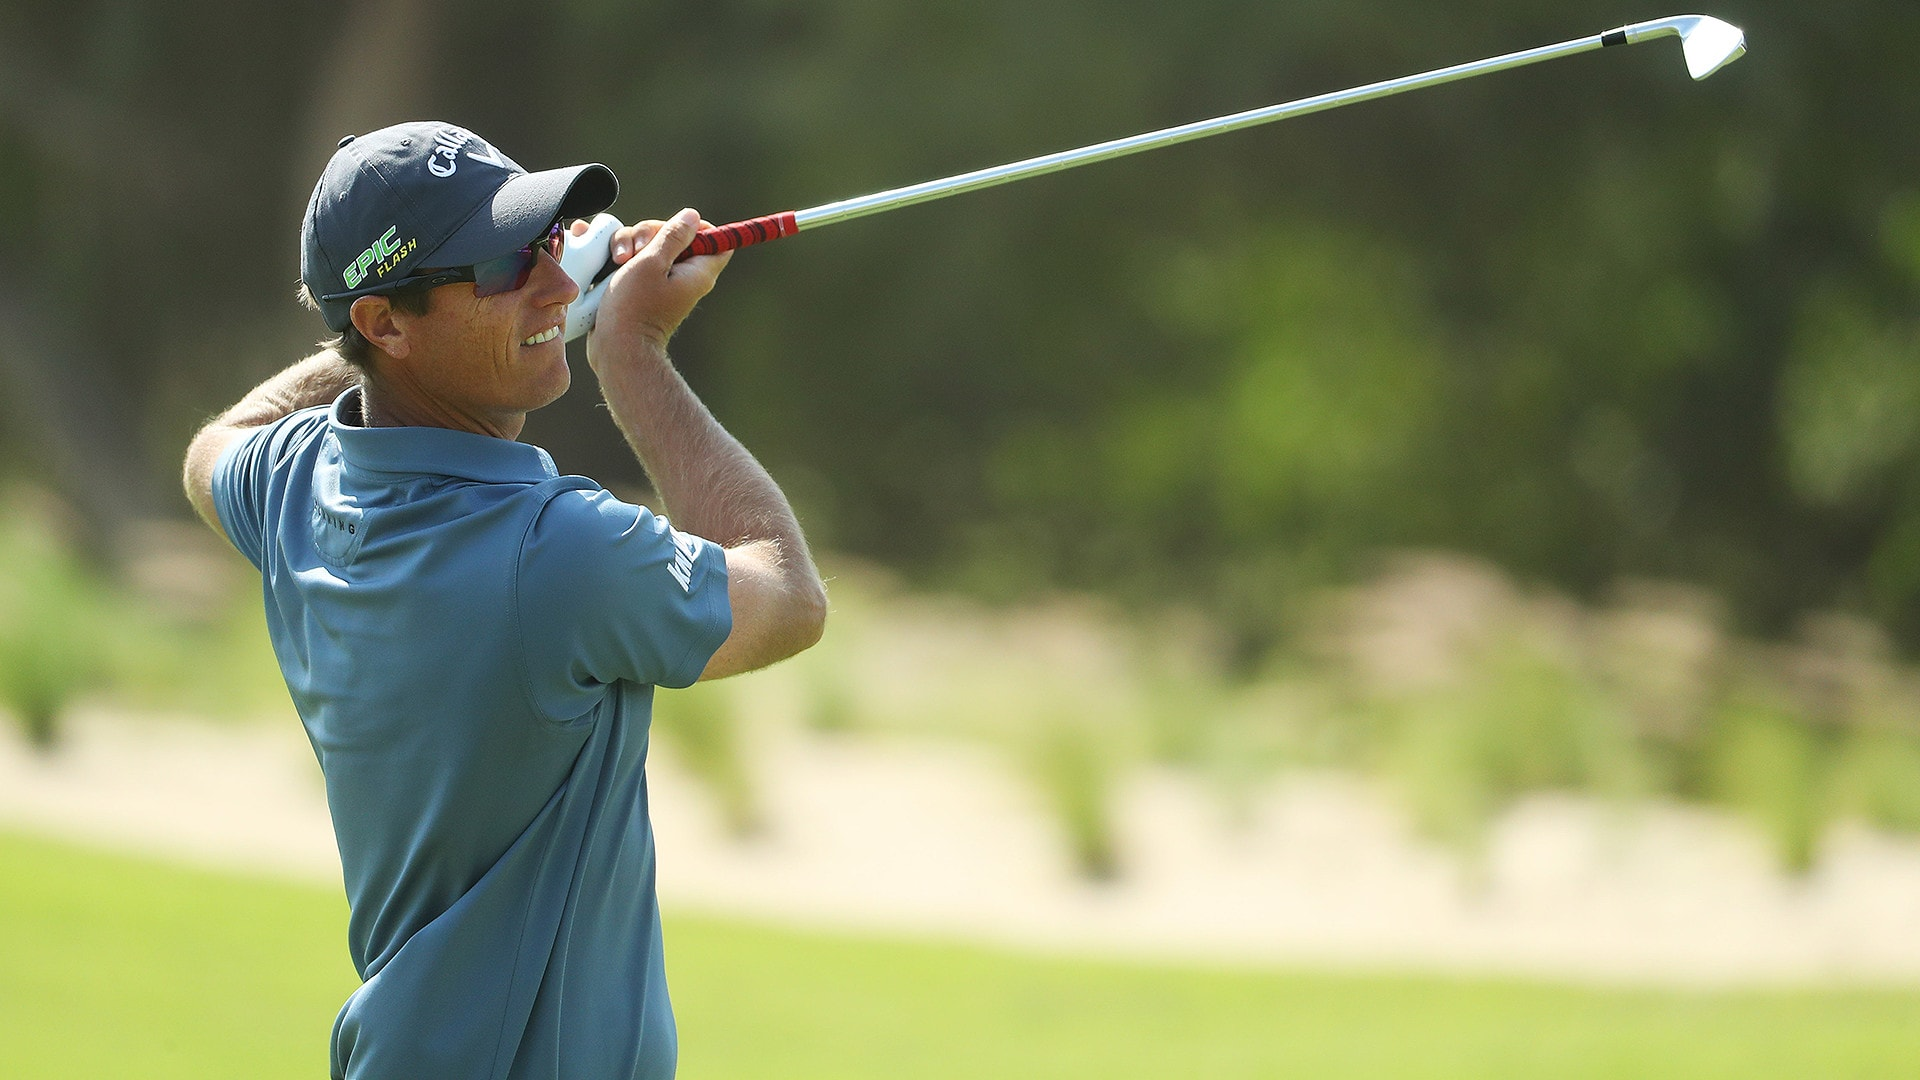 Trio Tied Through Two Rounds At Qatar Masters